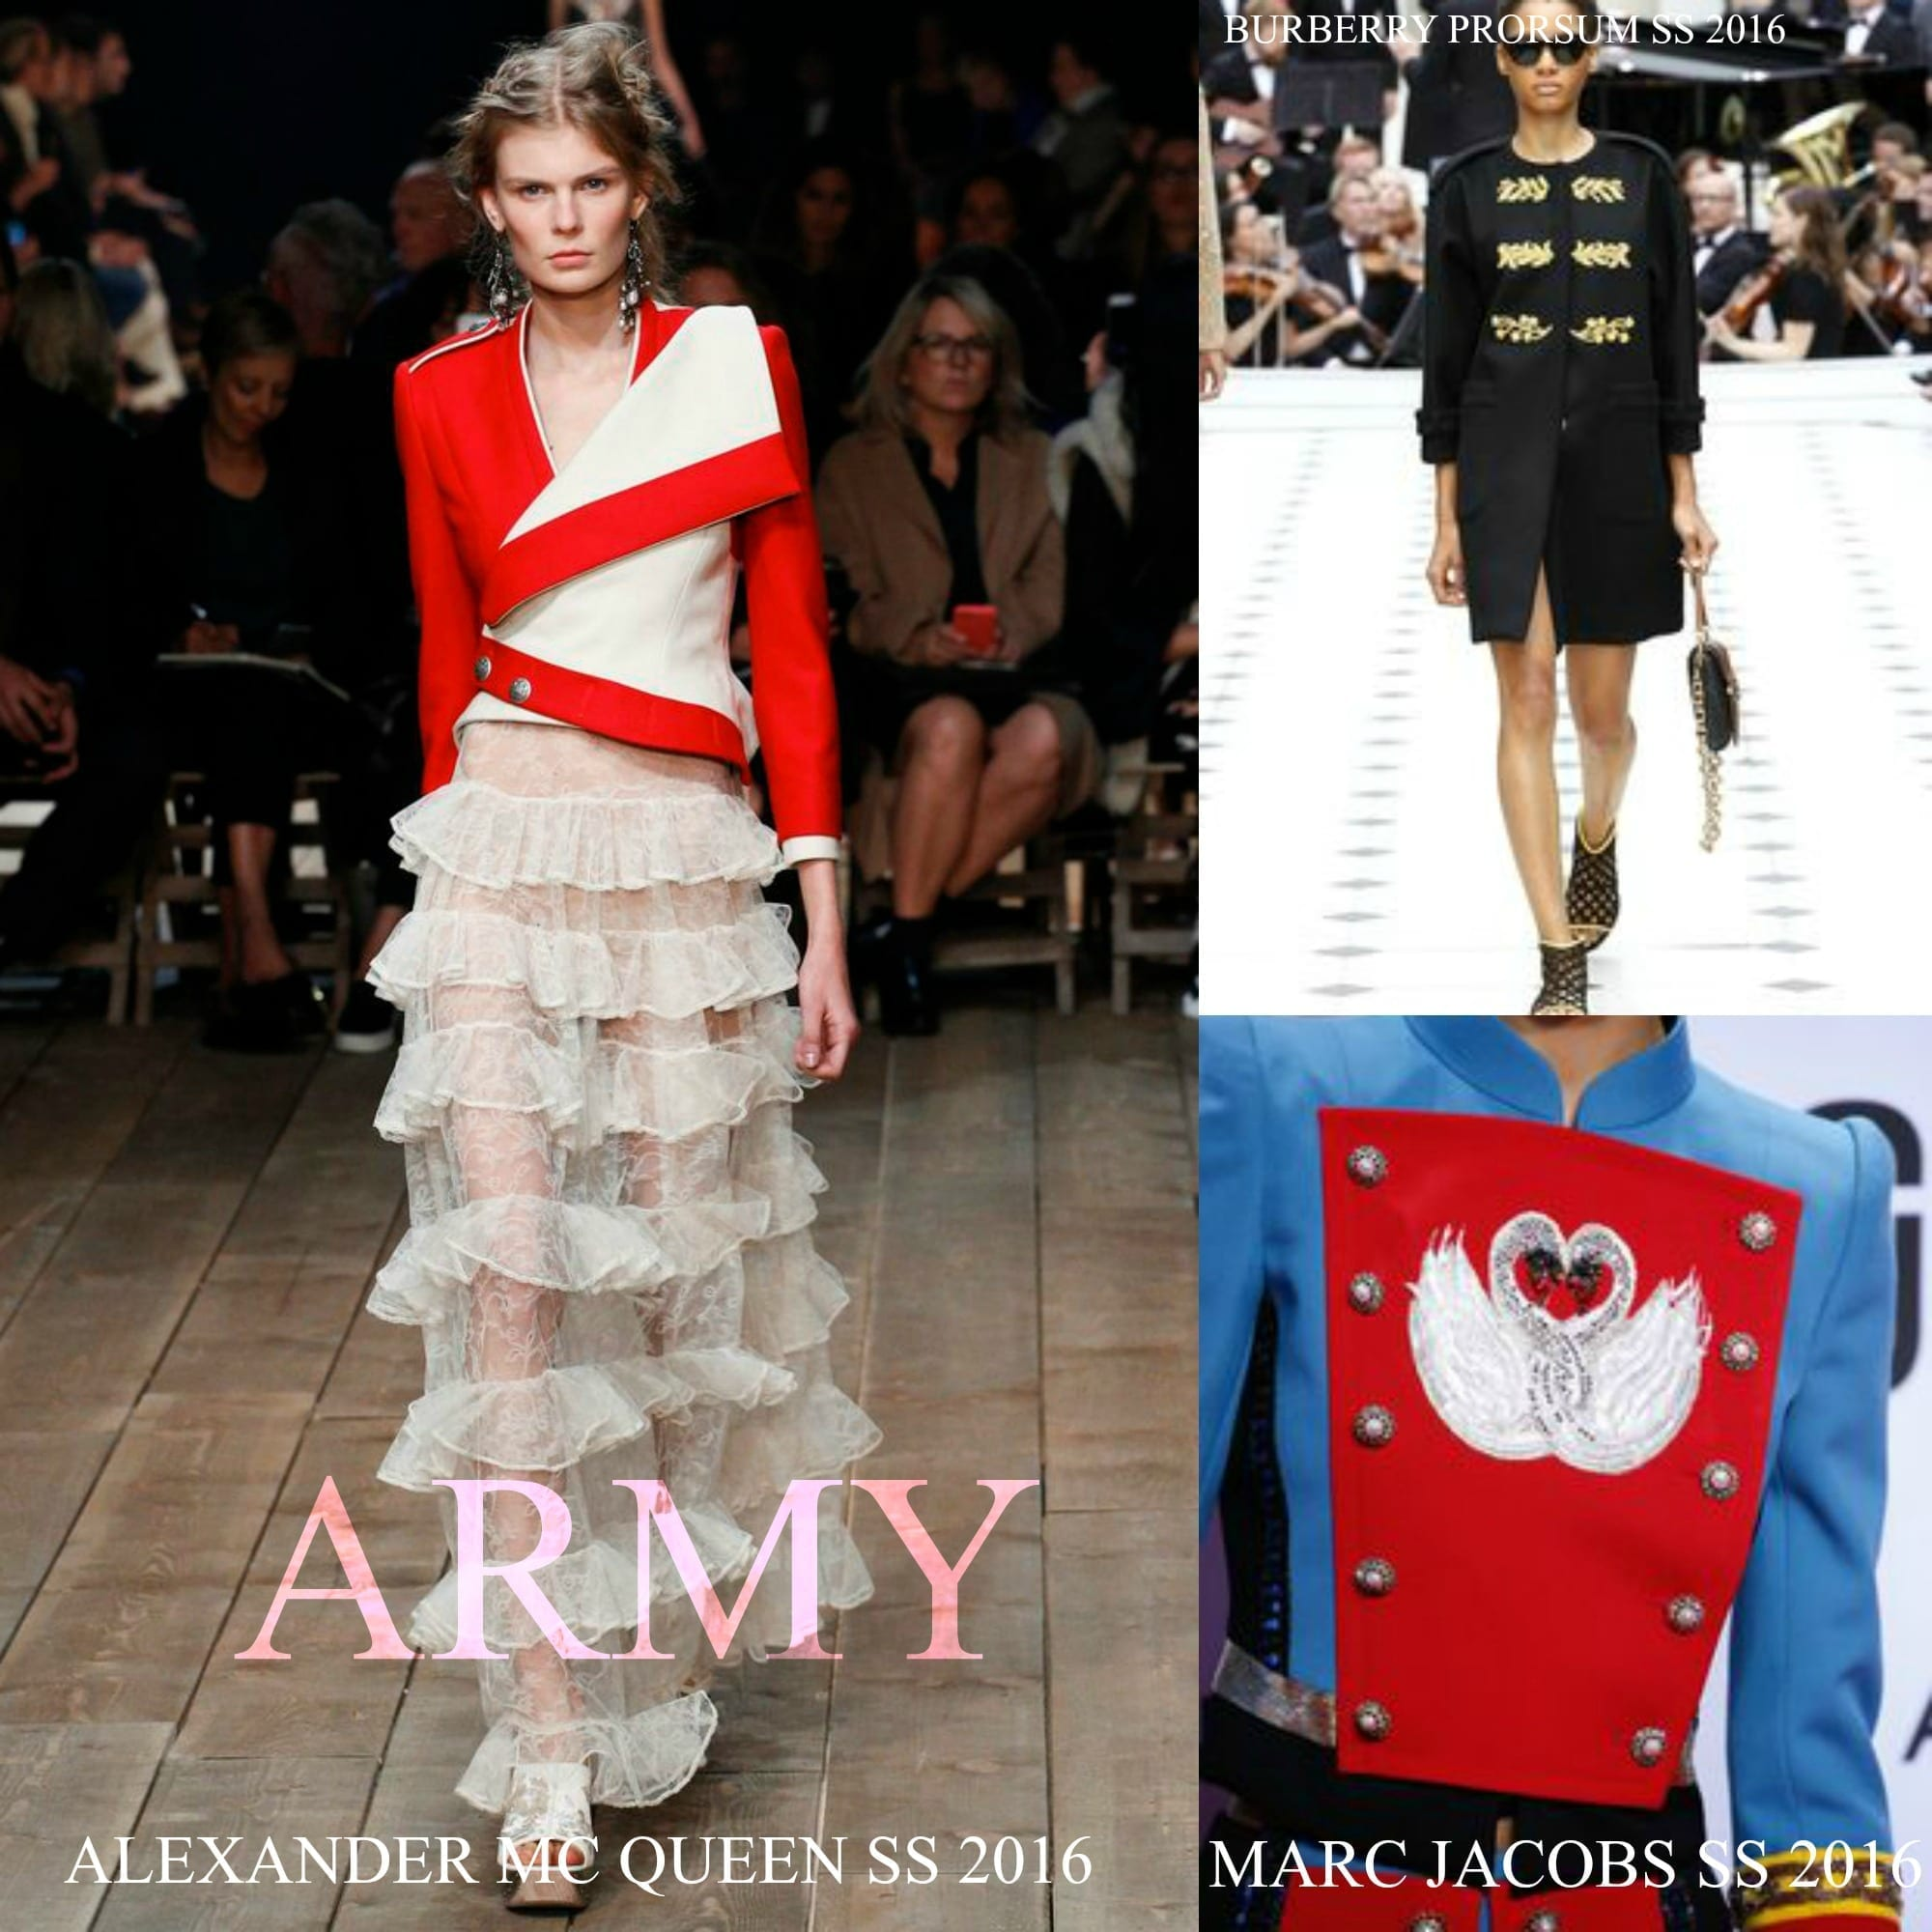 Tendenze moda primavera estate 2016 ecco il meglio per il tuo shopping, theladycracy.it, elisa bellino,fashion blogger famose, alexander mc queen ss 2016, marc jacobs ss 2016, army trend ss 2016,